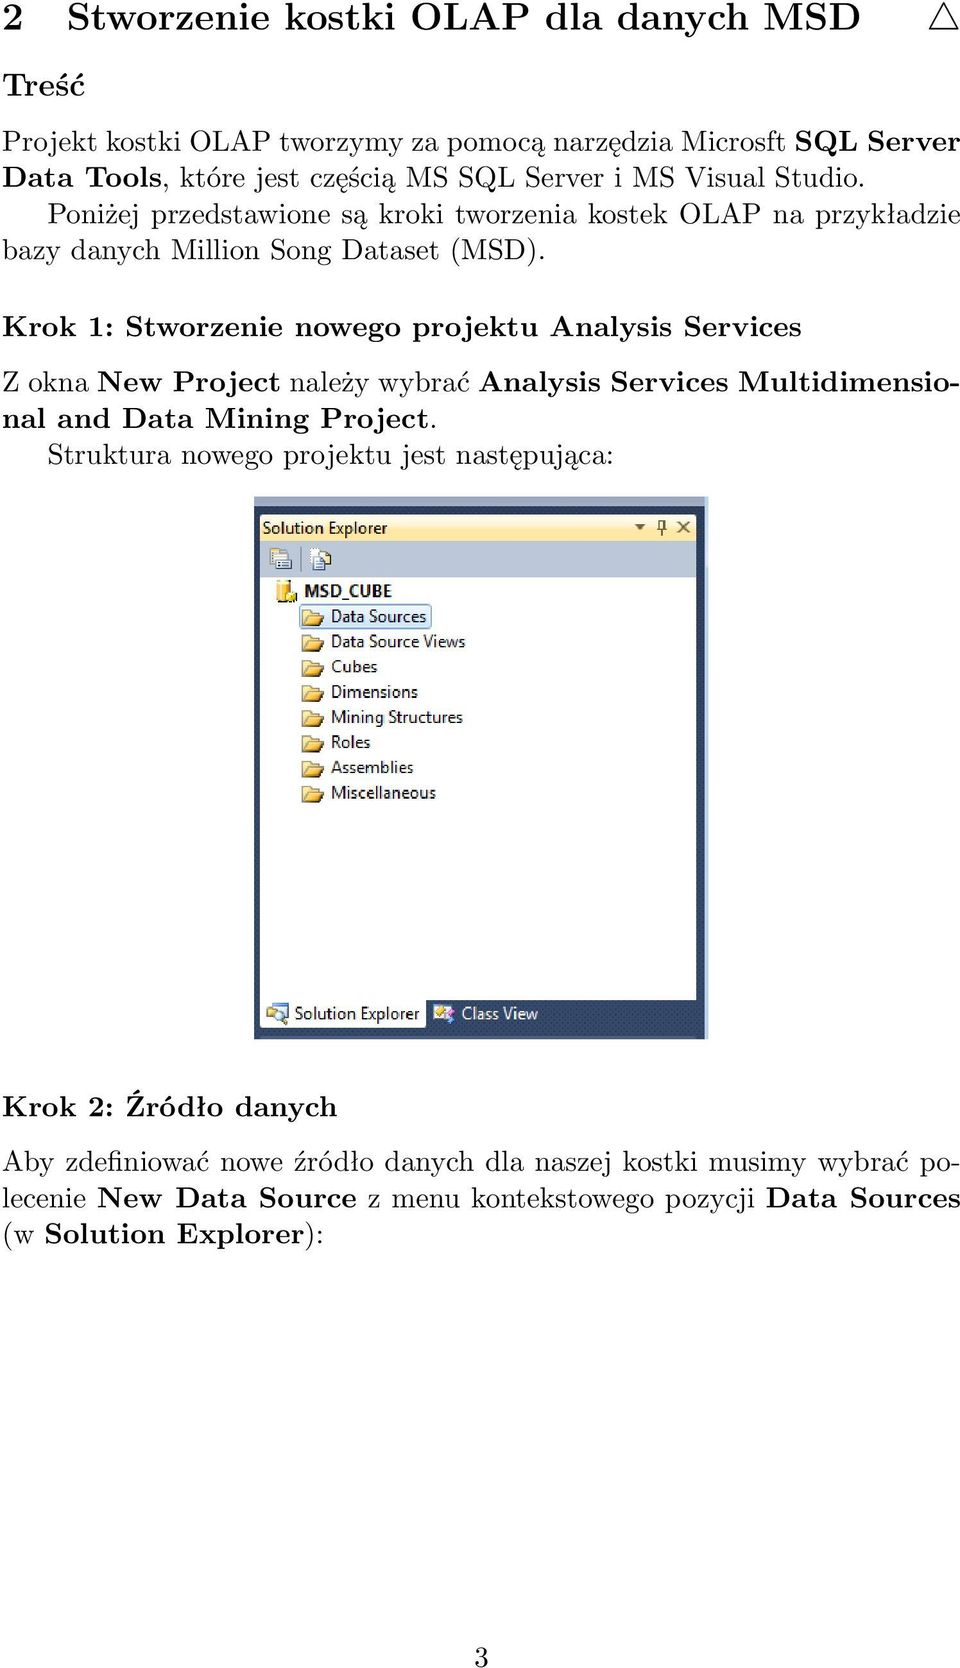 Krok 1: Stworzenie nowego projektu Analysis Services Z okna New Project należy wybrać Analysis Services Multidimensional and Data Mining Project.